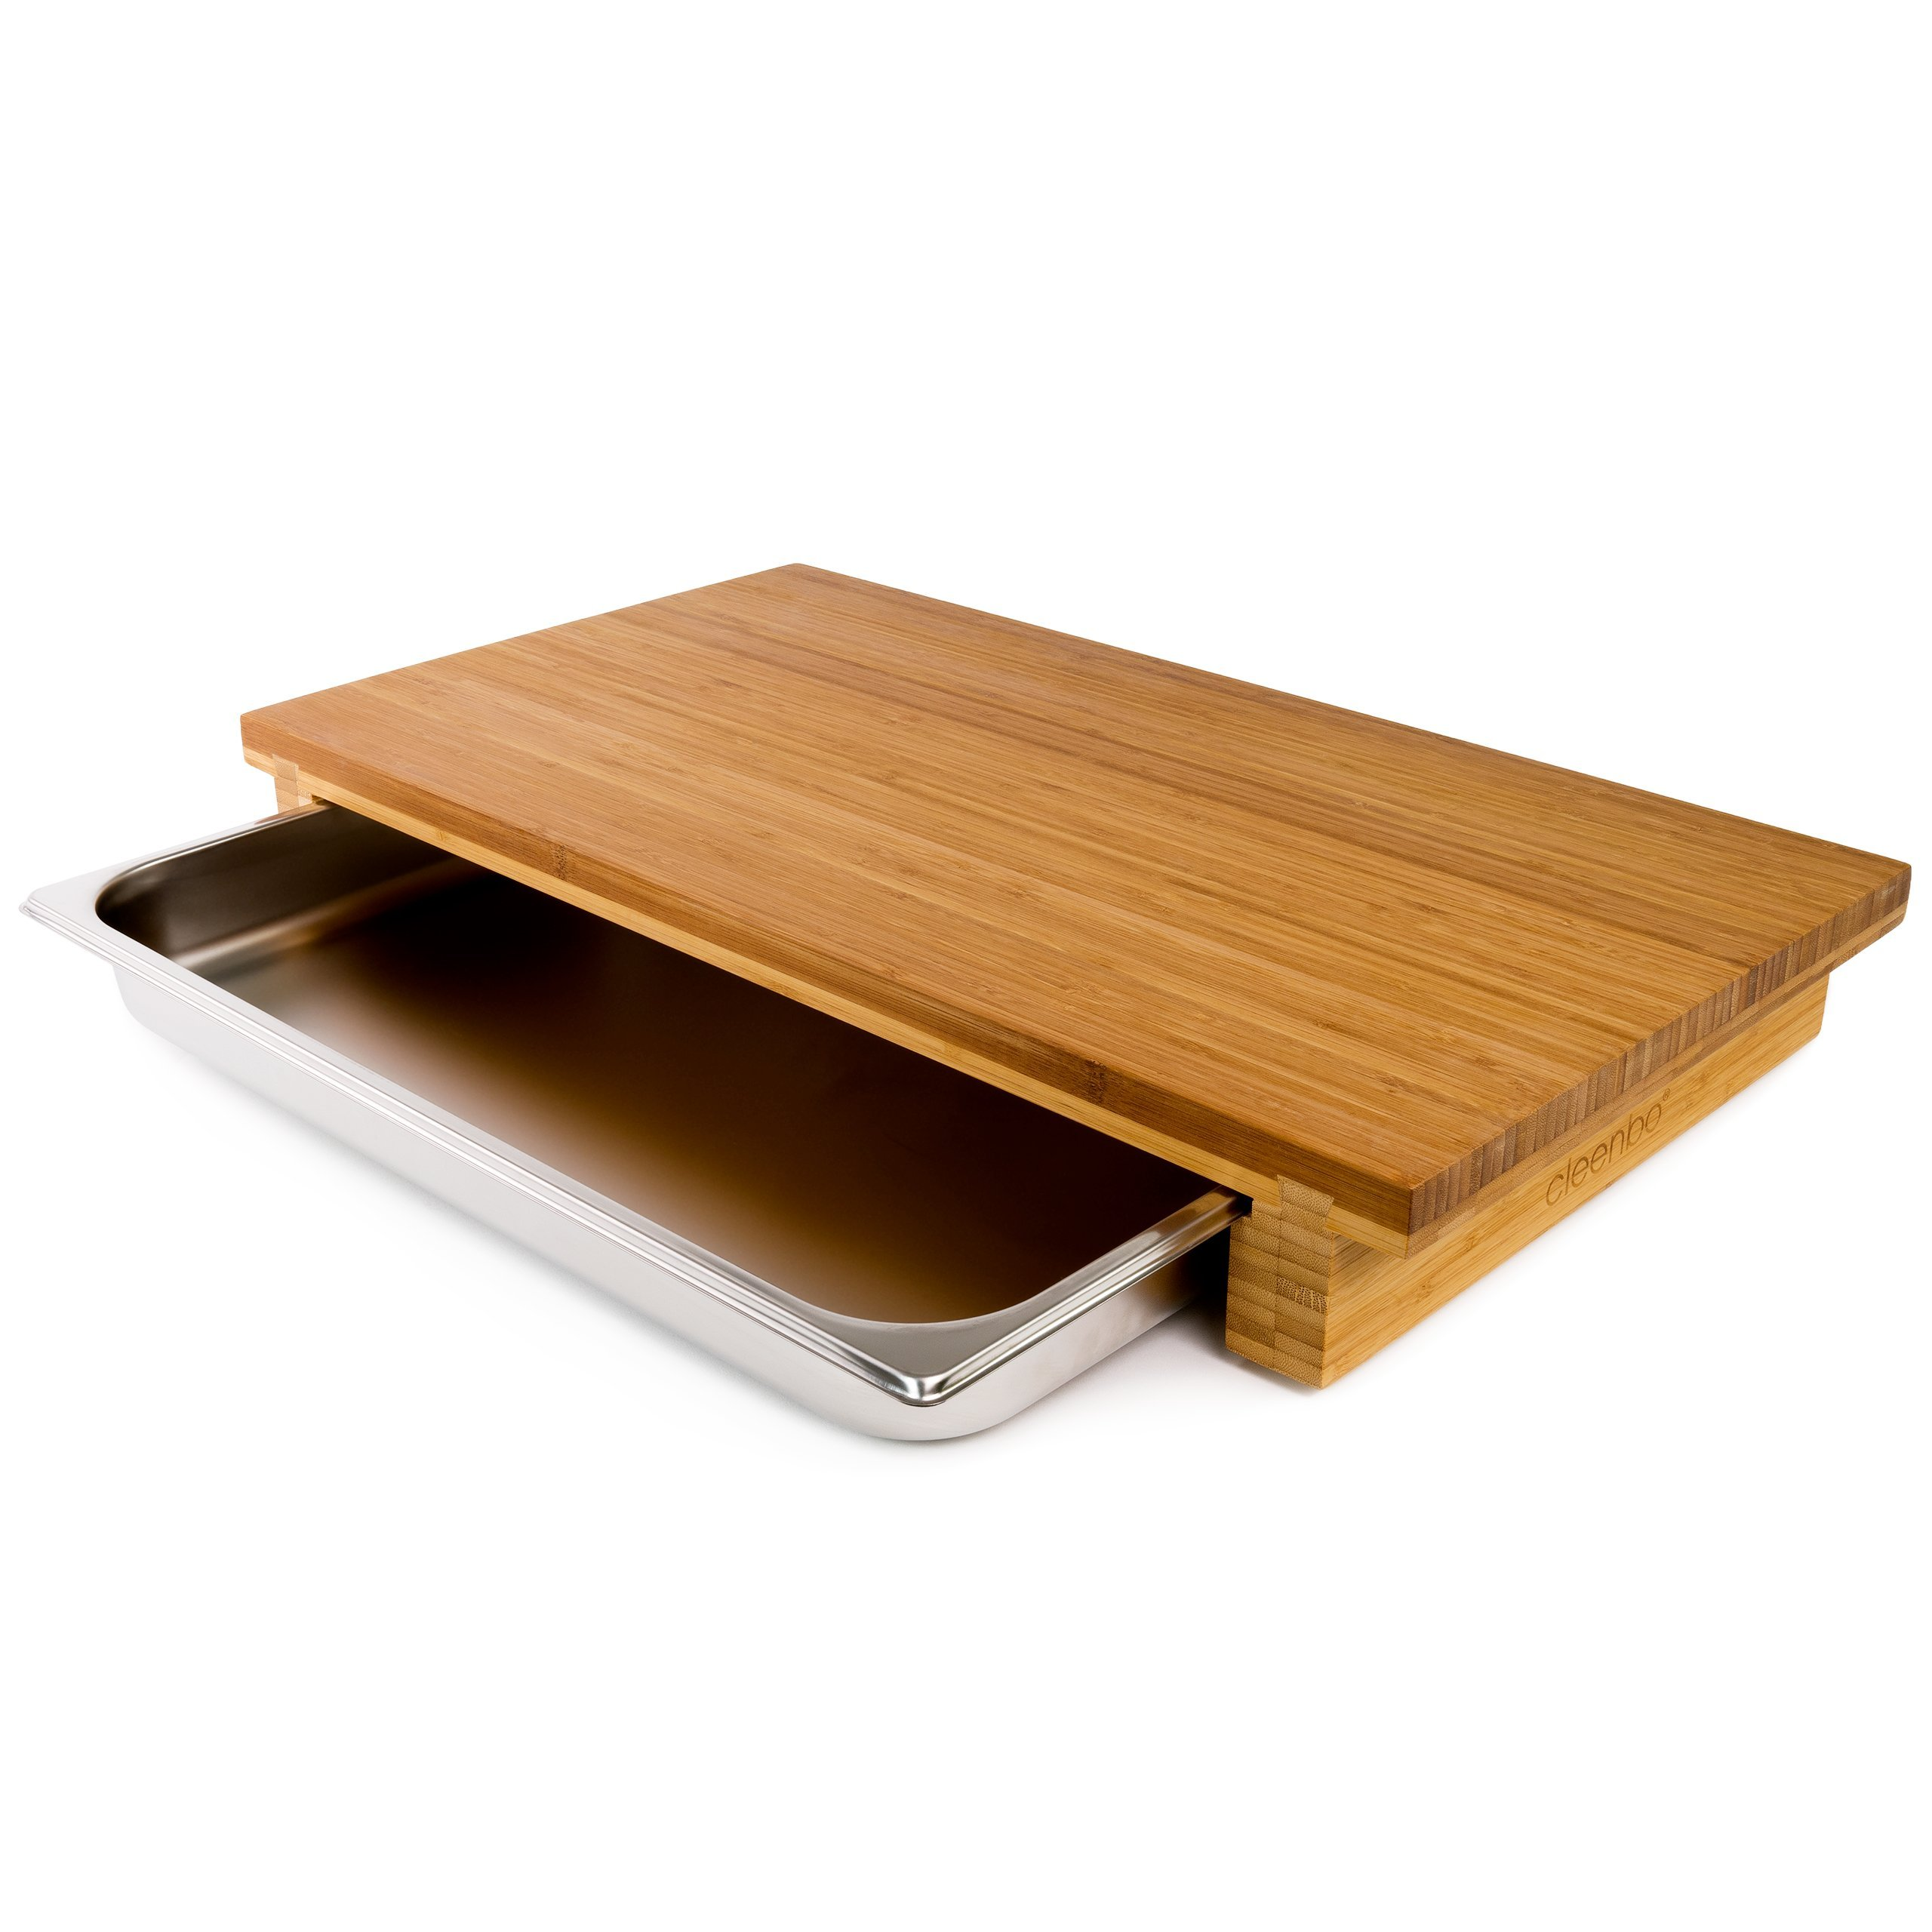 cleenbo Chopping board ''big bloc bamboo GN'', oiled bamboo countertop cutting board with stainless steel tray, Eco-Friendly, Board Dimensions: 25,6 x 14,2 x 3,5 in